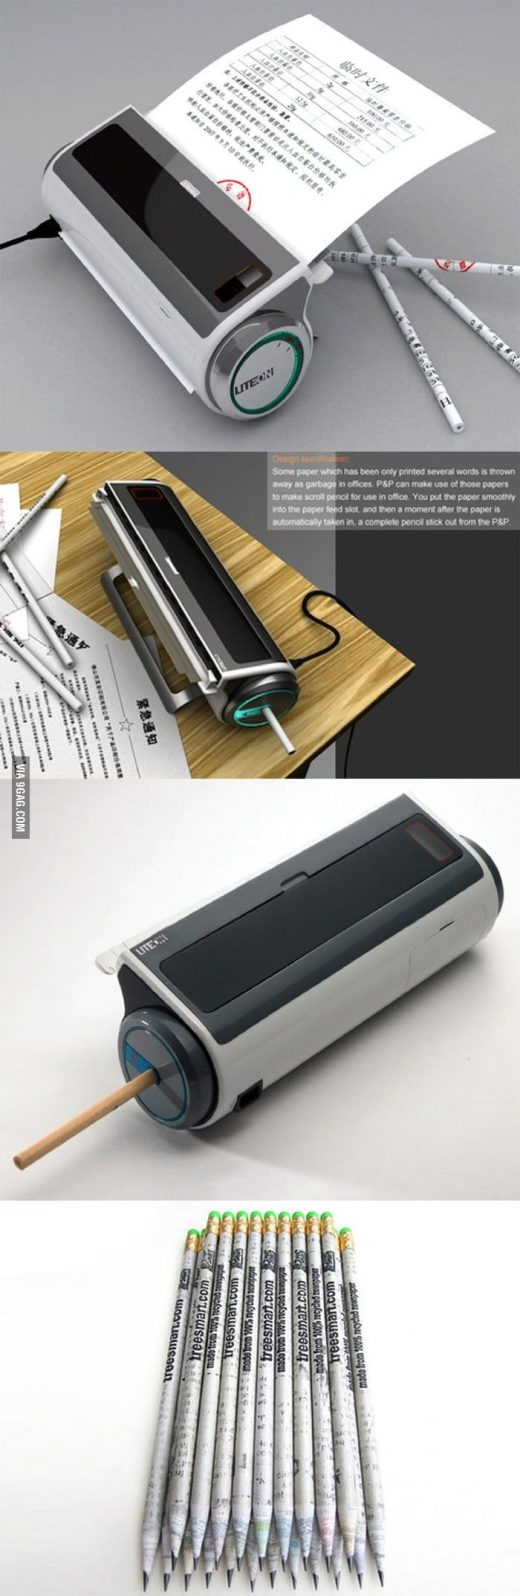 Recycling machine turns papers into pencils.